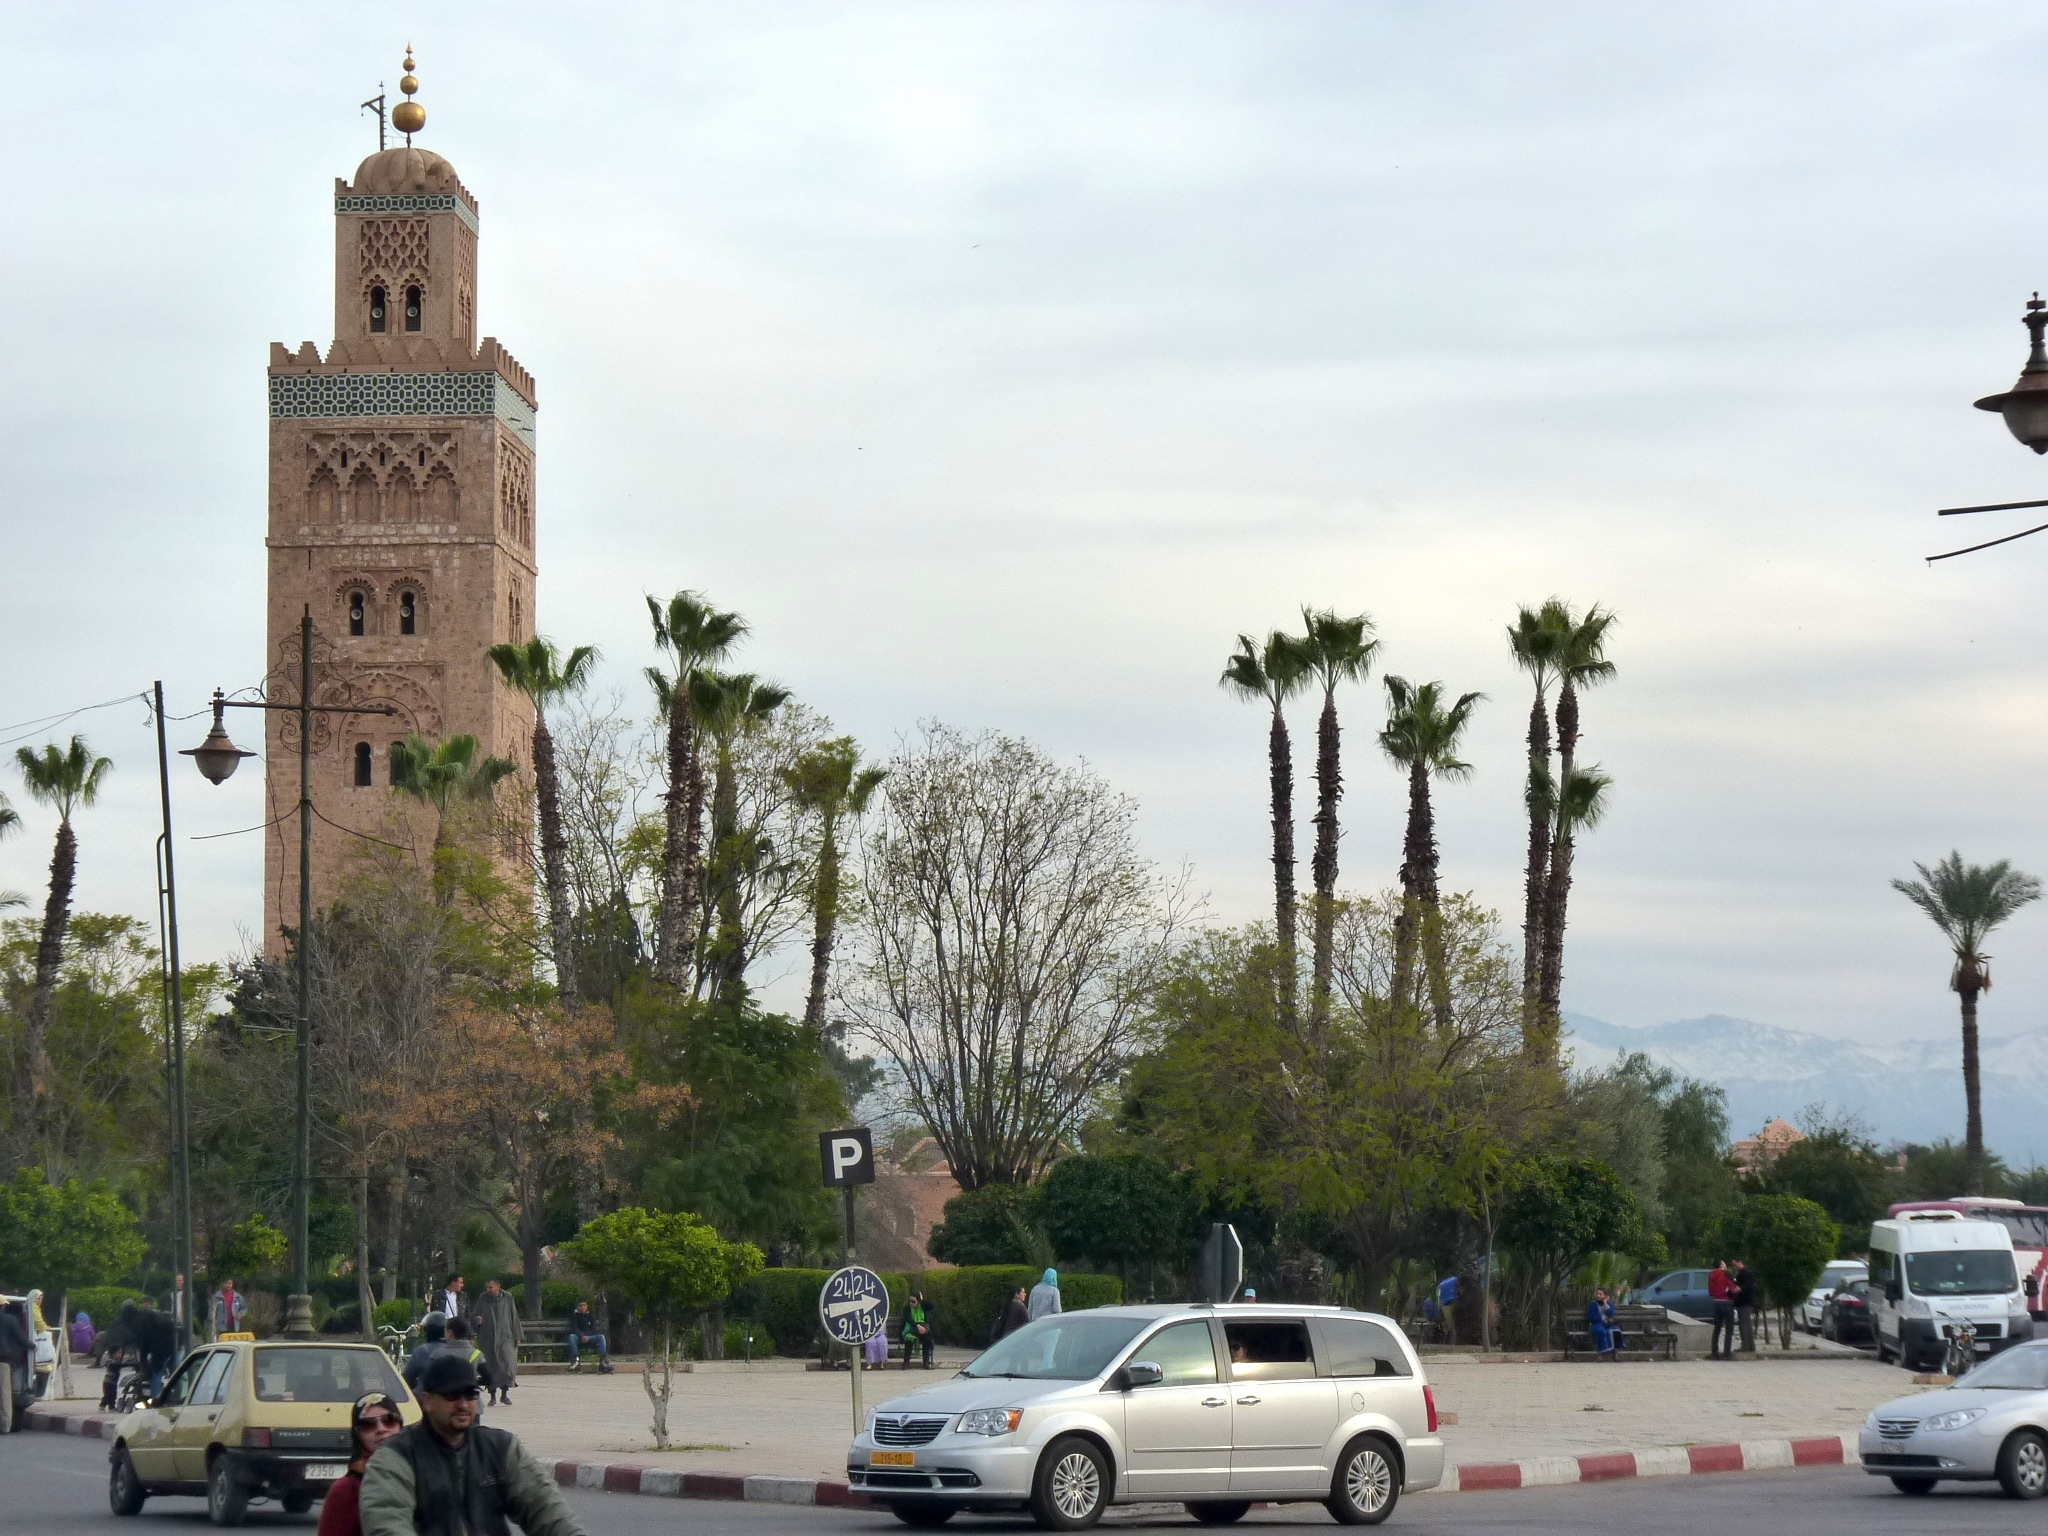 The Grand Koutoubia Minaret in Marrakesh